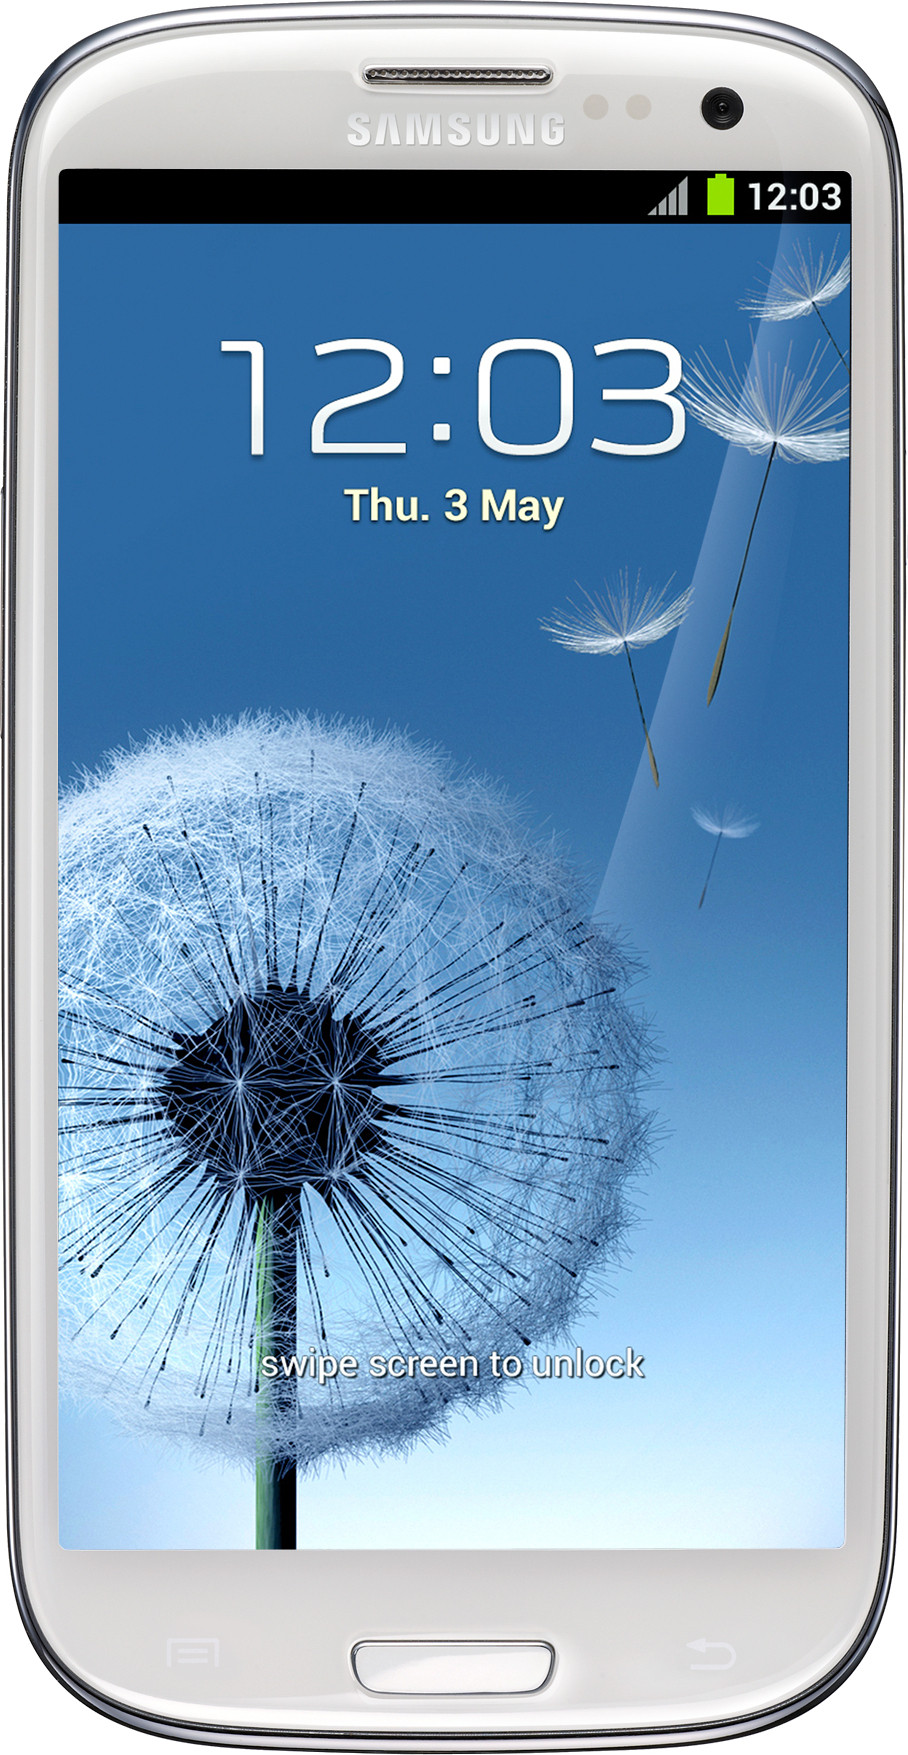 SAMSUNG Galaxy S3 Neo (Marble White, 16 GB) - Electronics